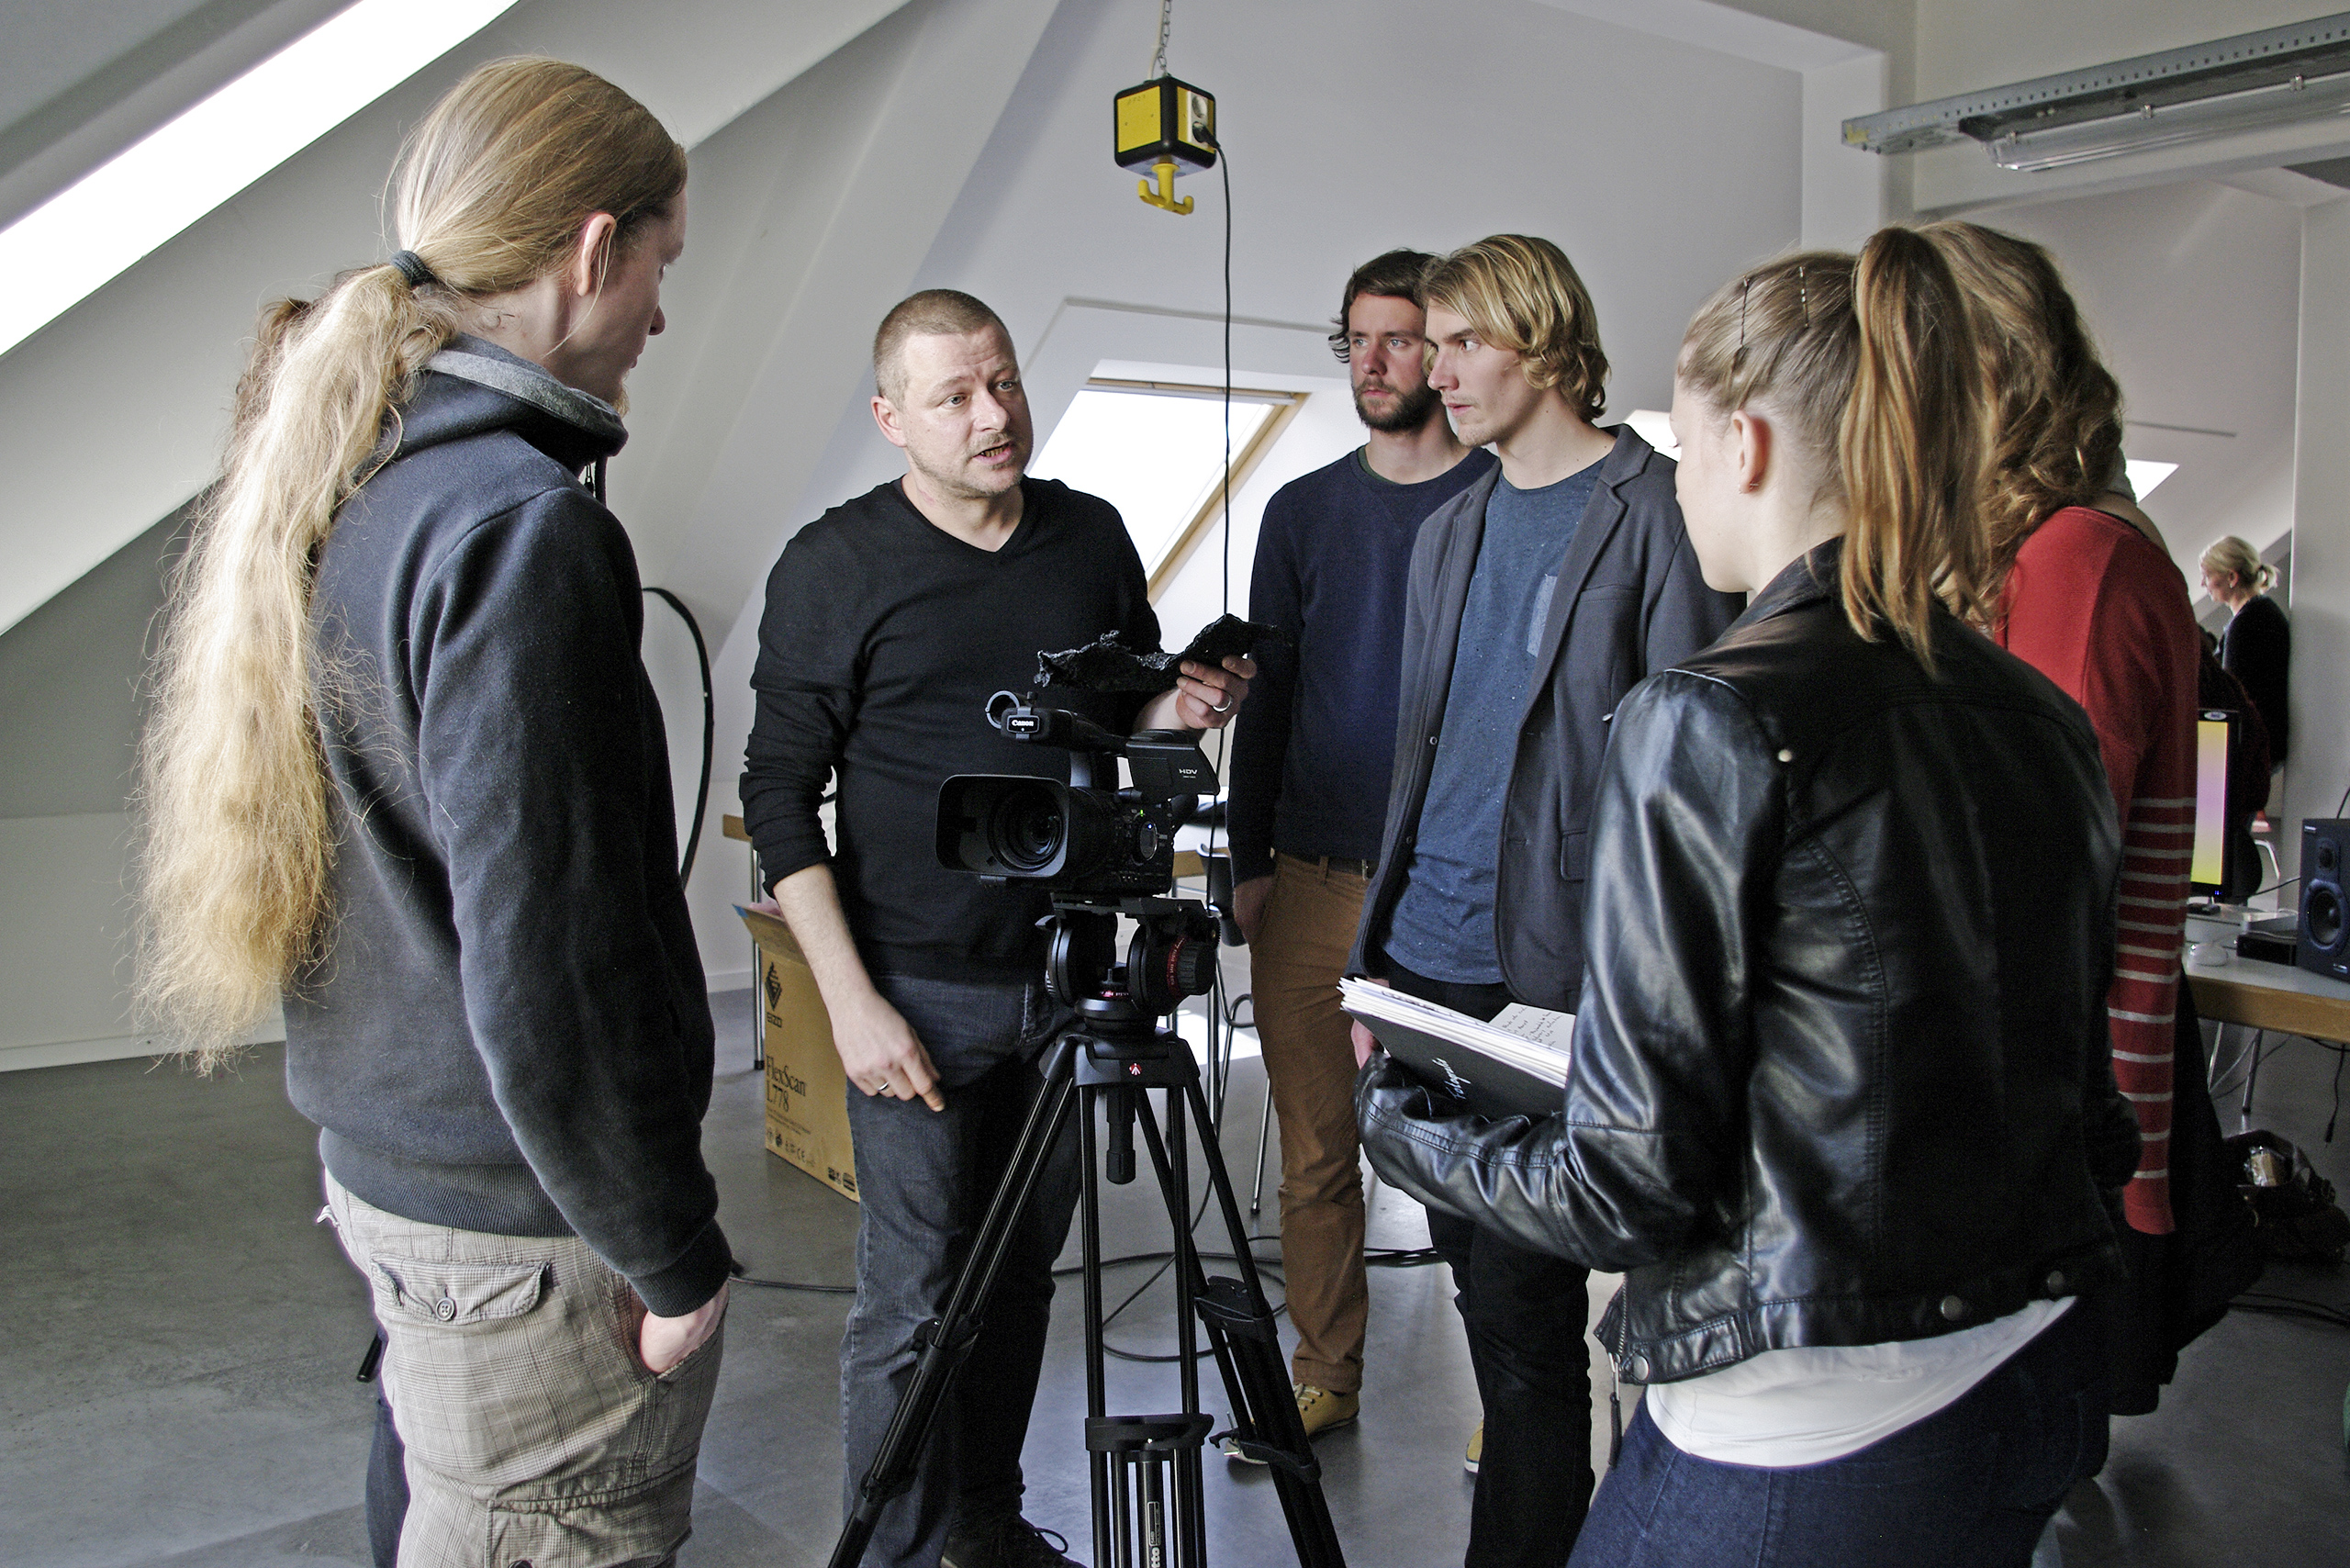 Documentary film workshop with Joanna Maxellon (far right in the back) & Harald Jantschke (at the camera) to prepare the students for the bicycle/documentary excursion to the DMY in Berlin | Photo: Matthias Ries